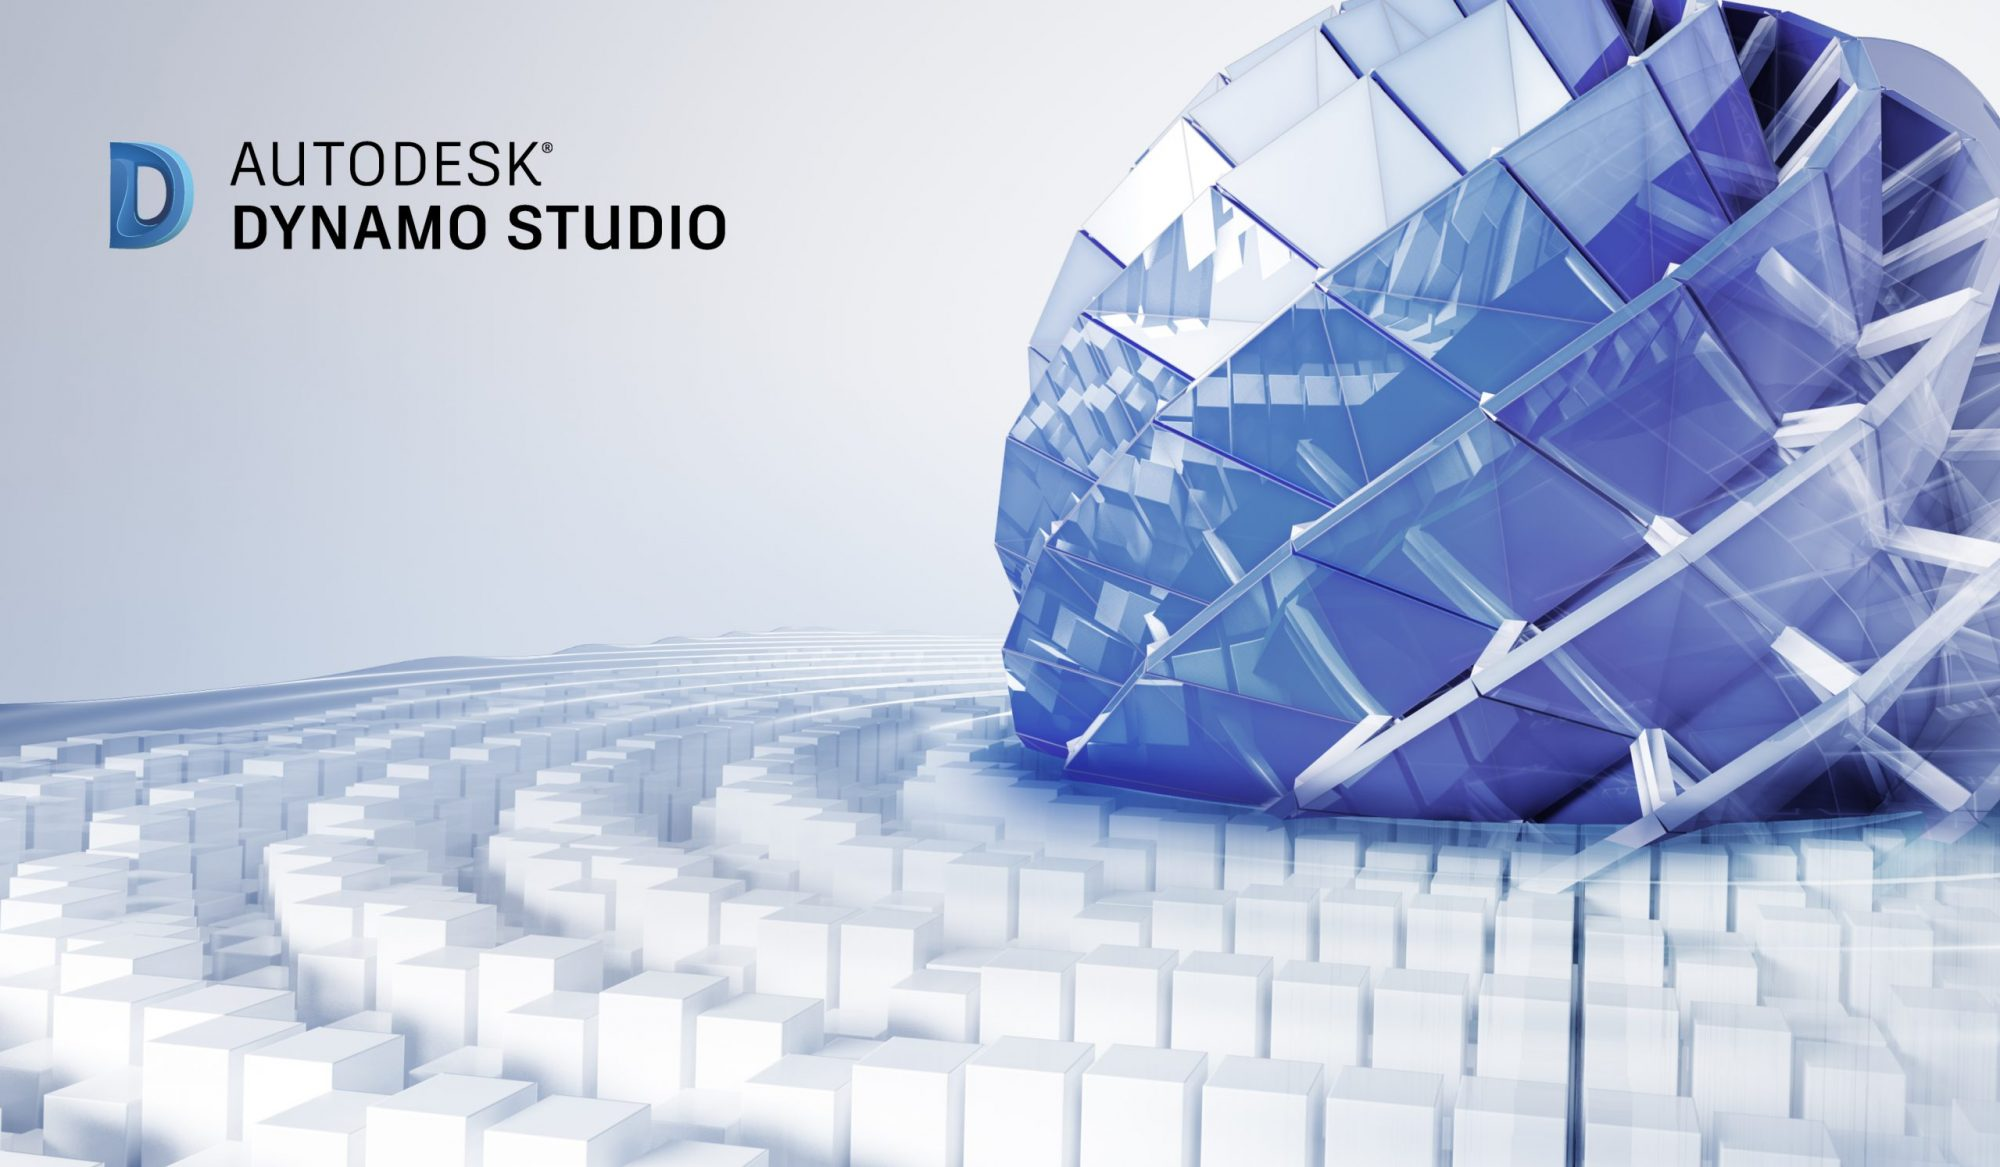 Dynamo Studio 2016 hero image. Rendering of an abstract composition designed and rendered in Autodesk(R) 3ds Max(R) software.